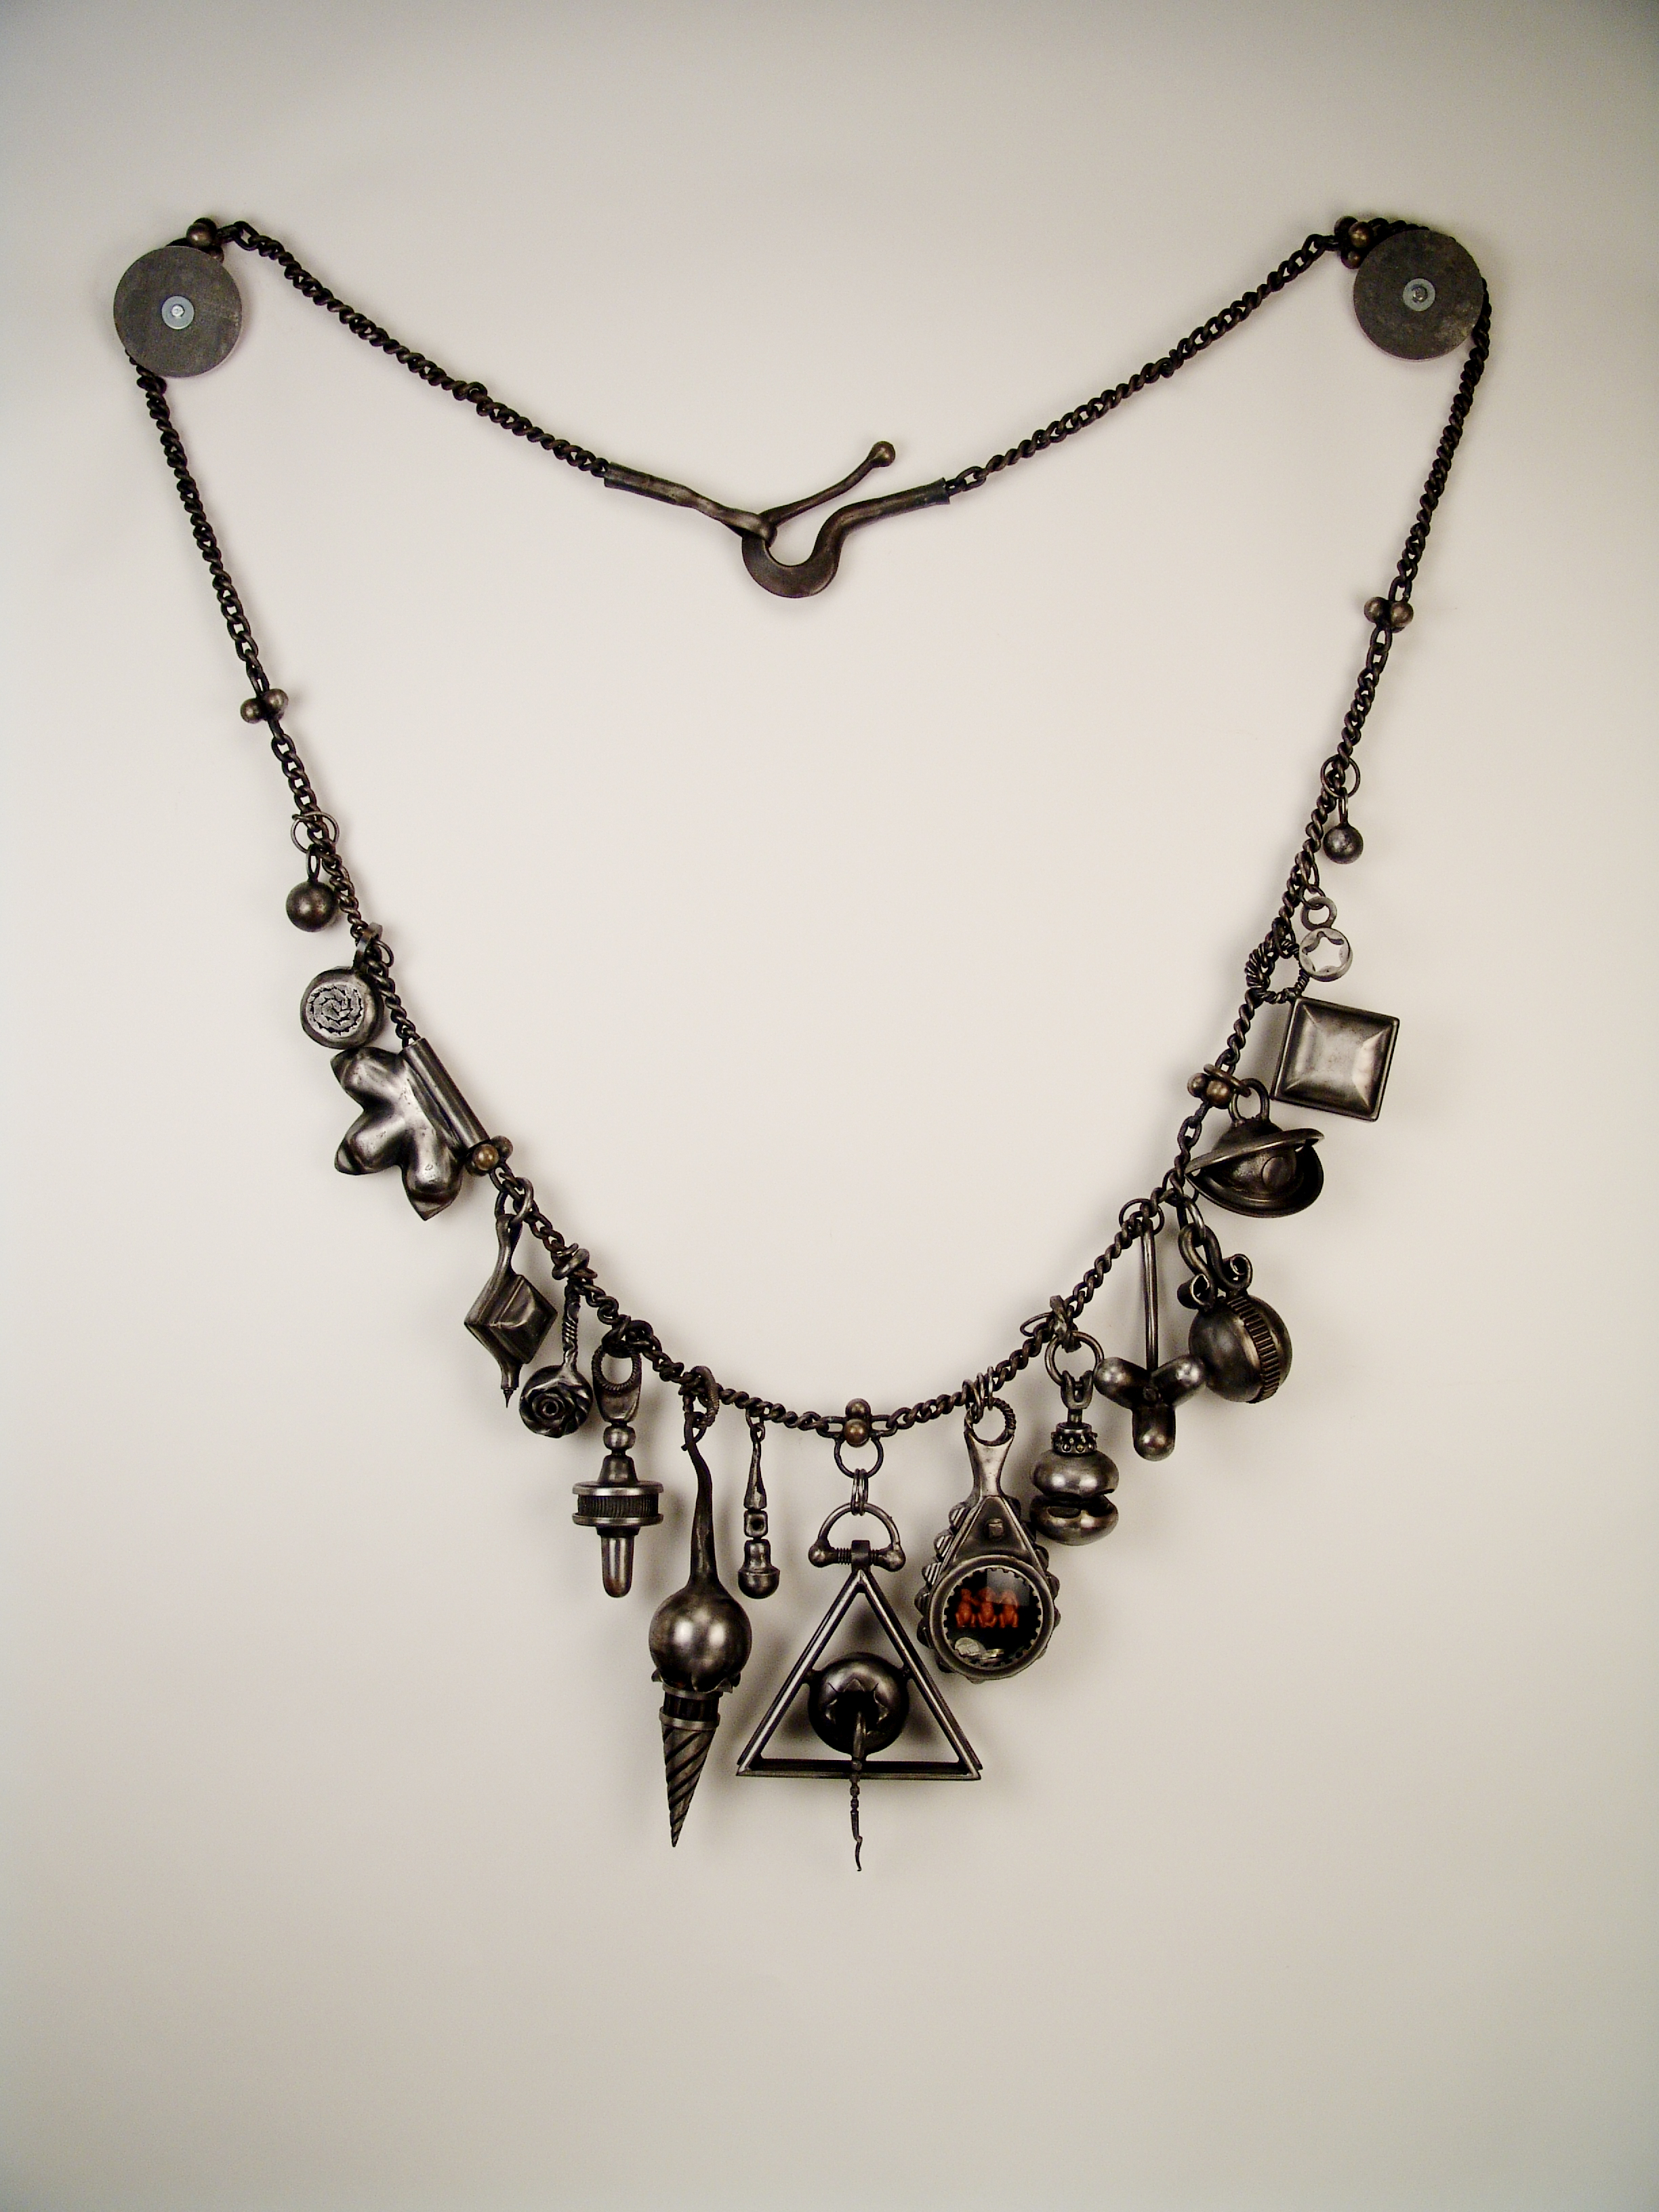 necklace01.JPG